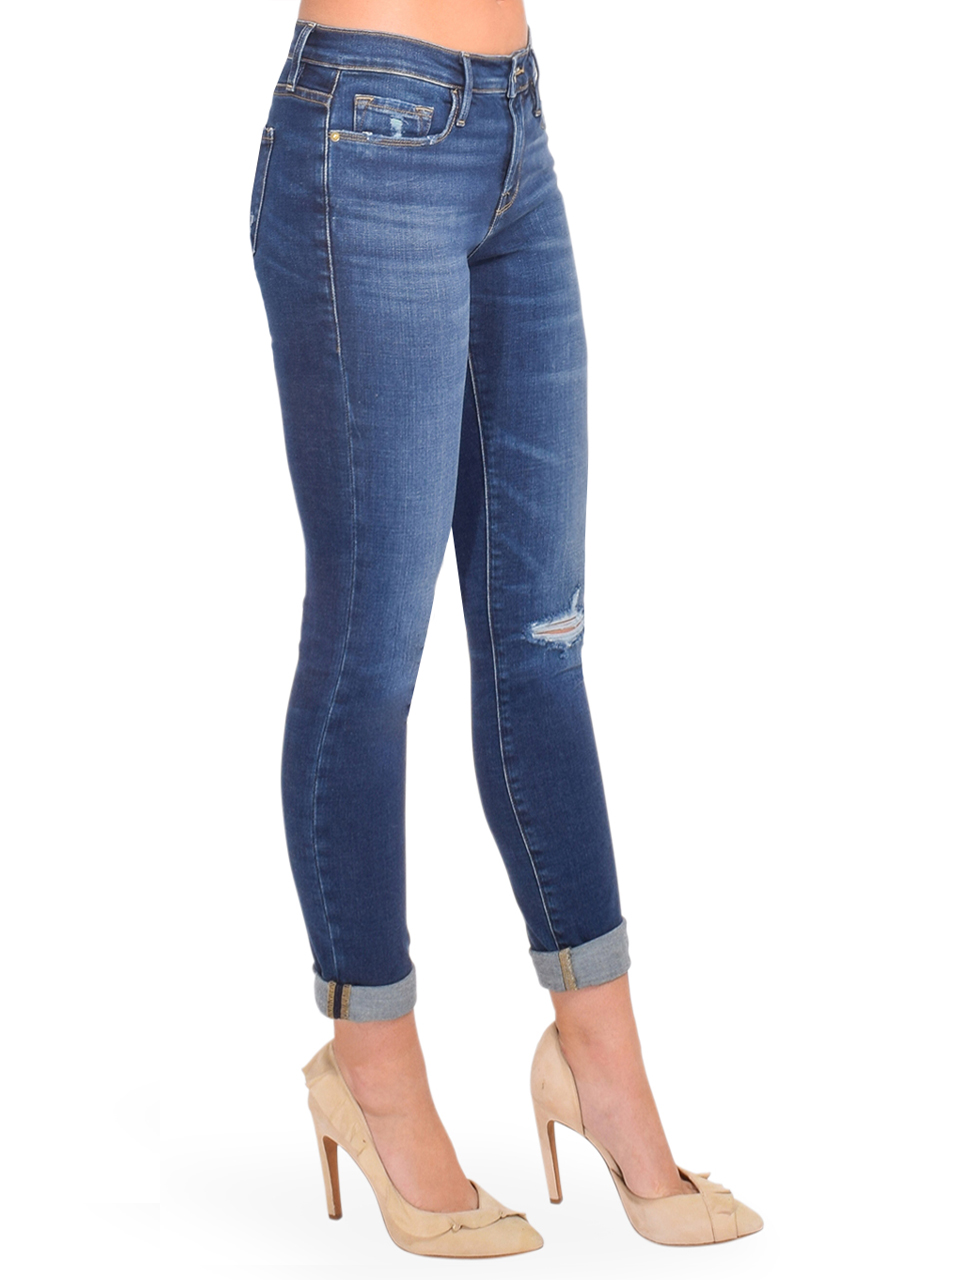 FRAME Le Garcon Straight Leg Jean in Caribou Side View